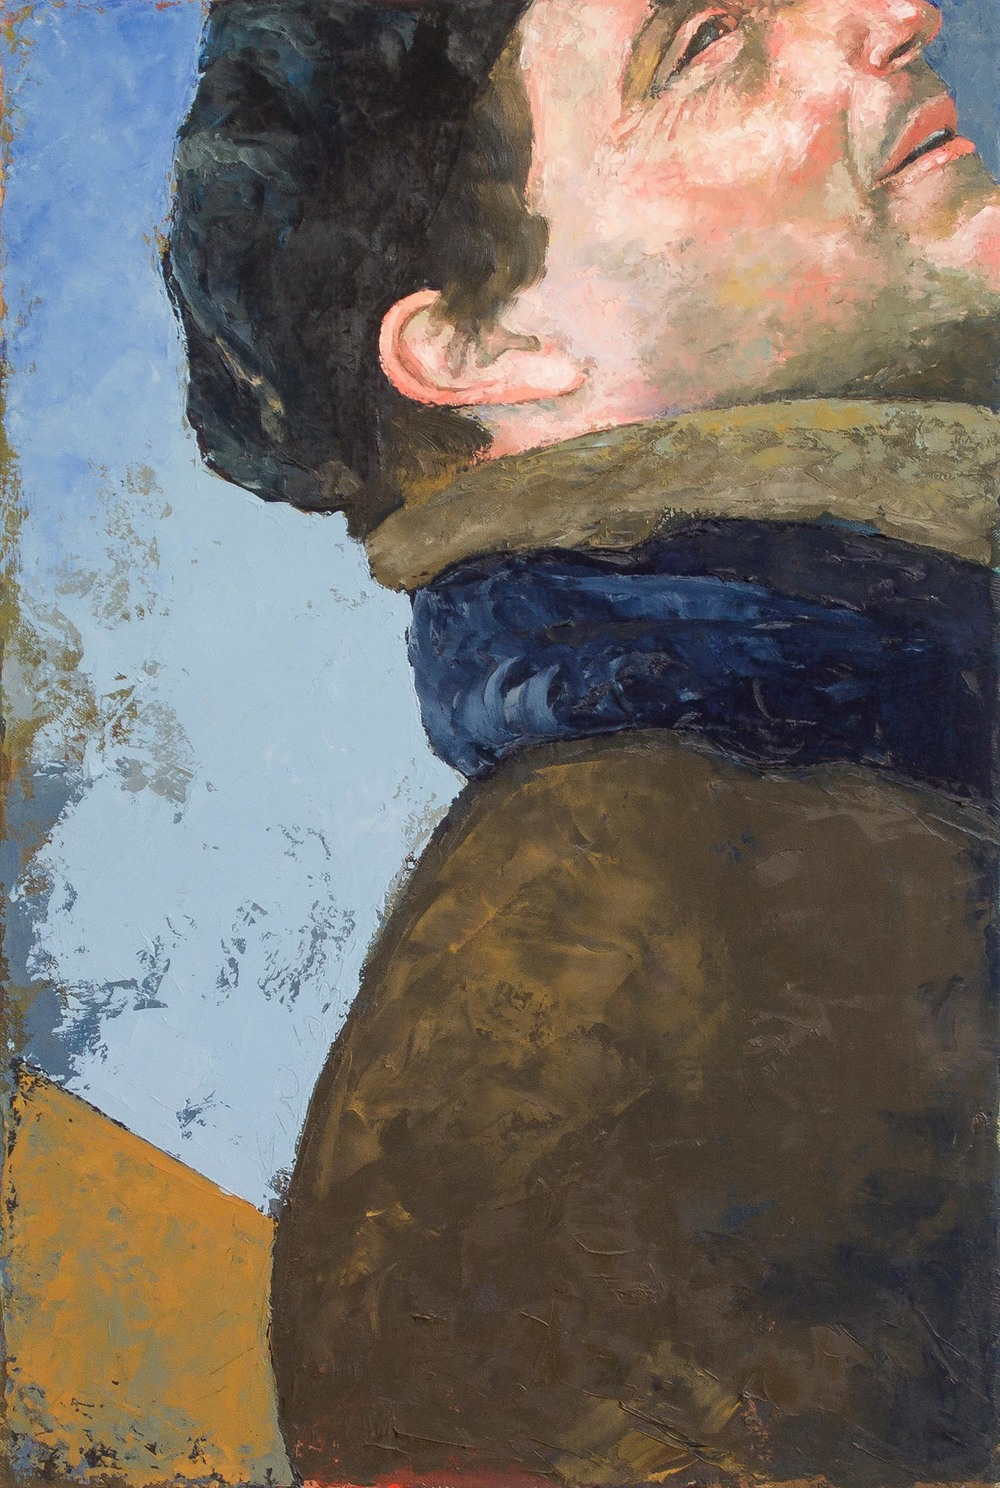 Man in Beret   2003 oil on canvas 24 x 16 inches  Private collection